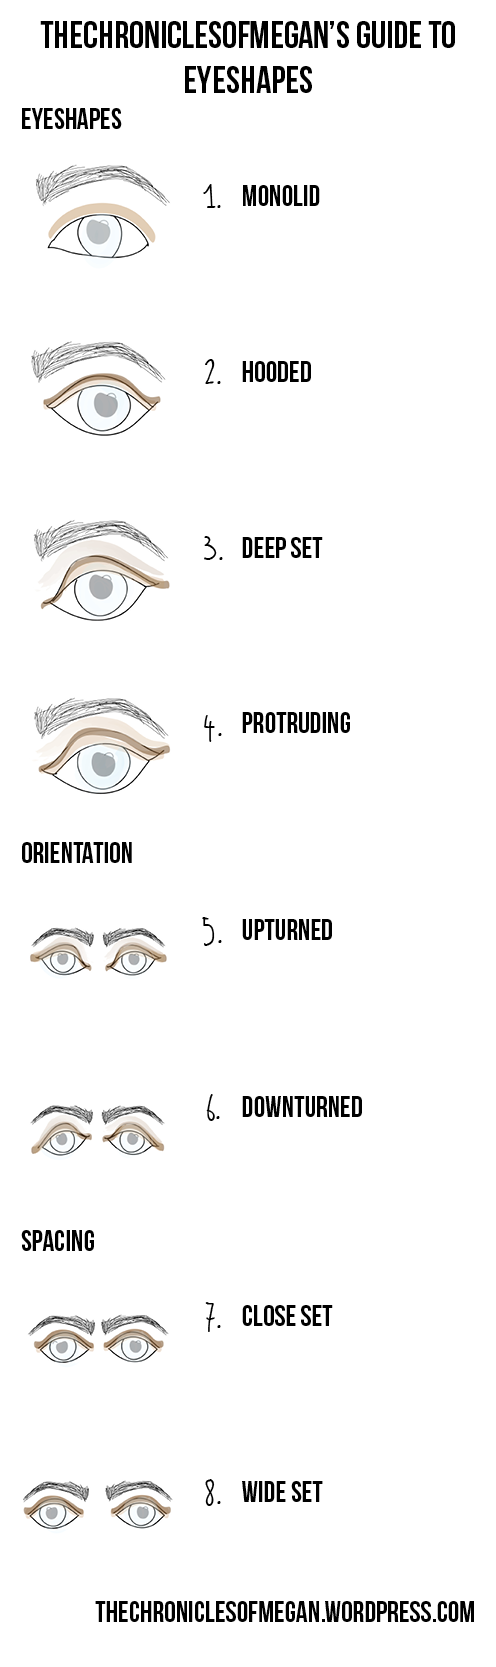 eyeshapechart